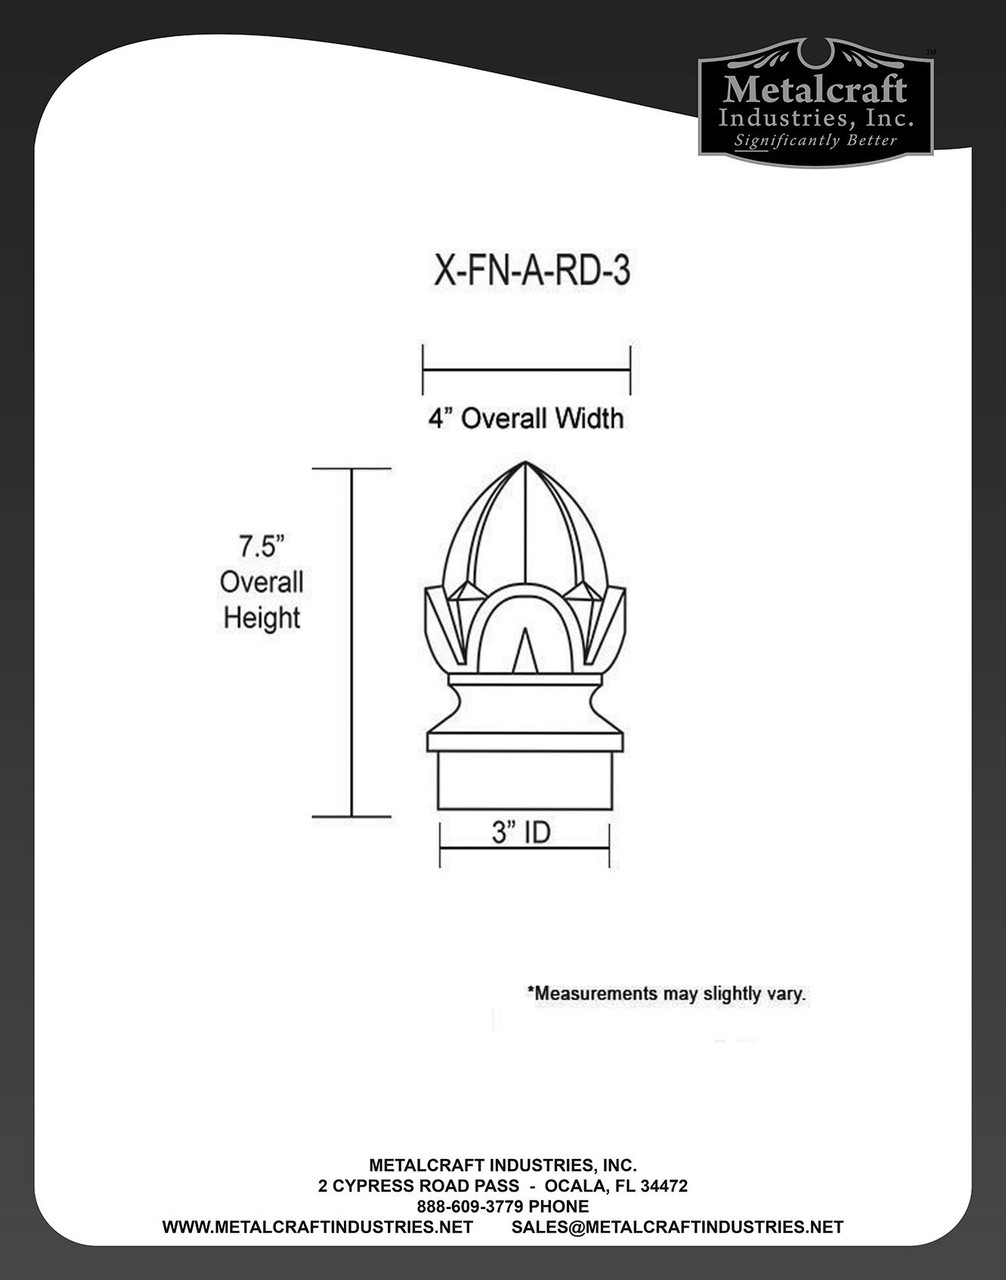 X-FN-A-RD-3 SPECIFICATION DRAWING